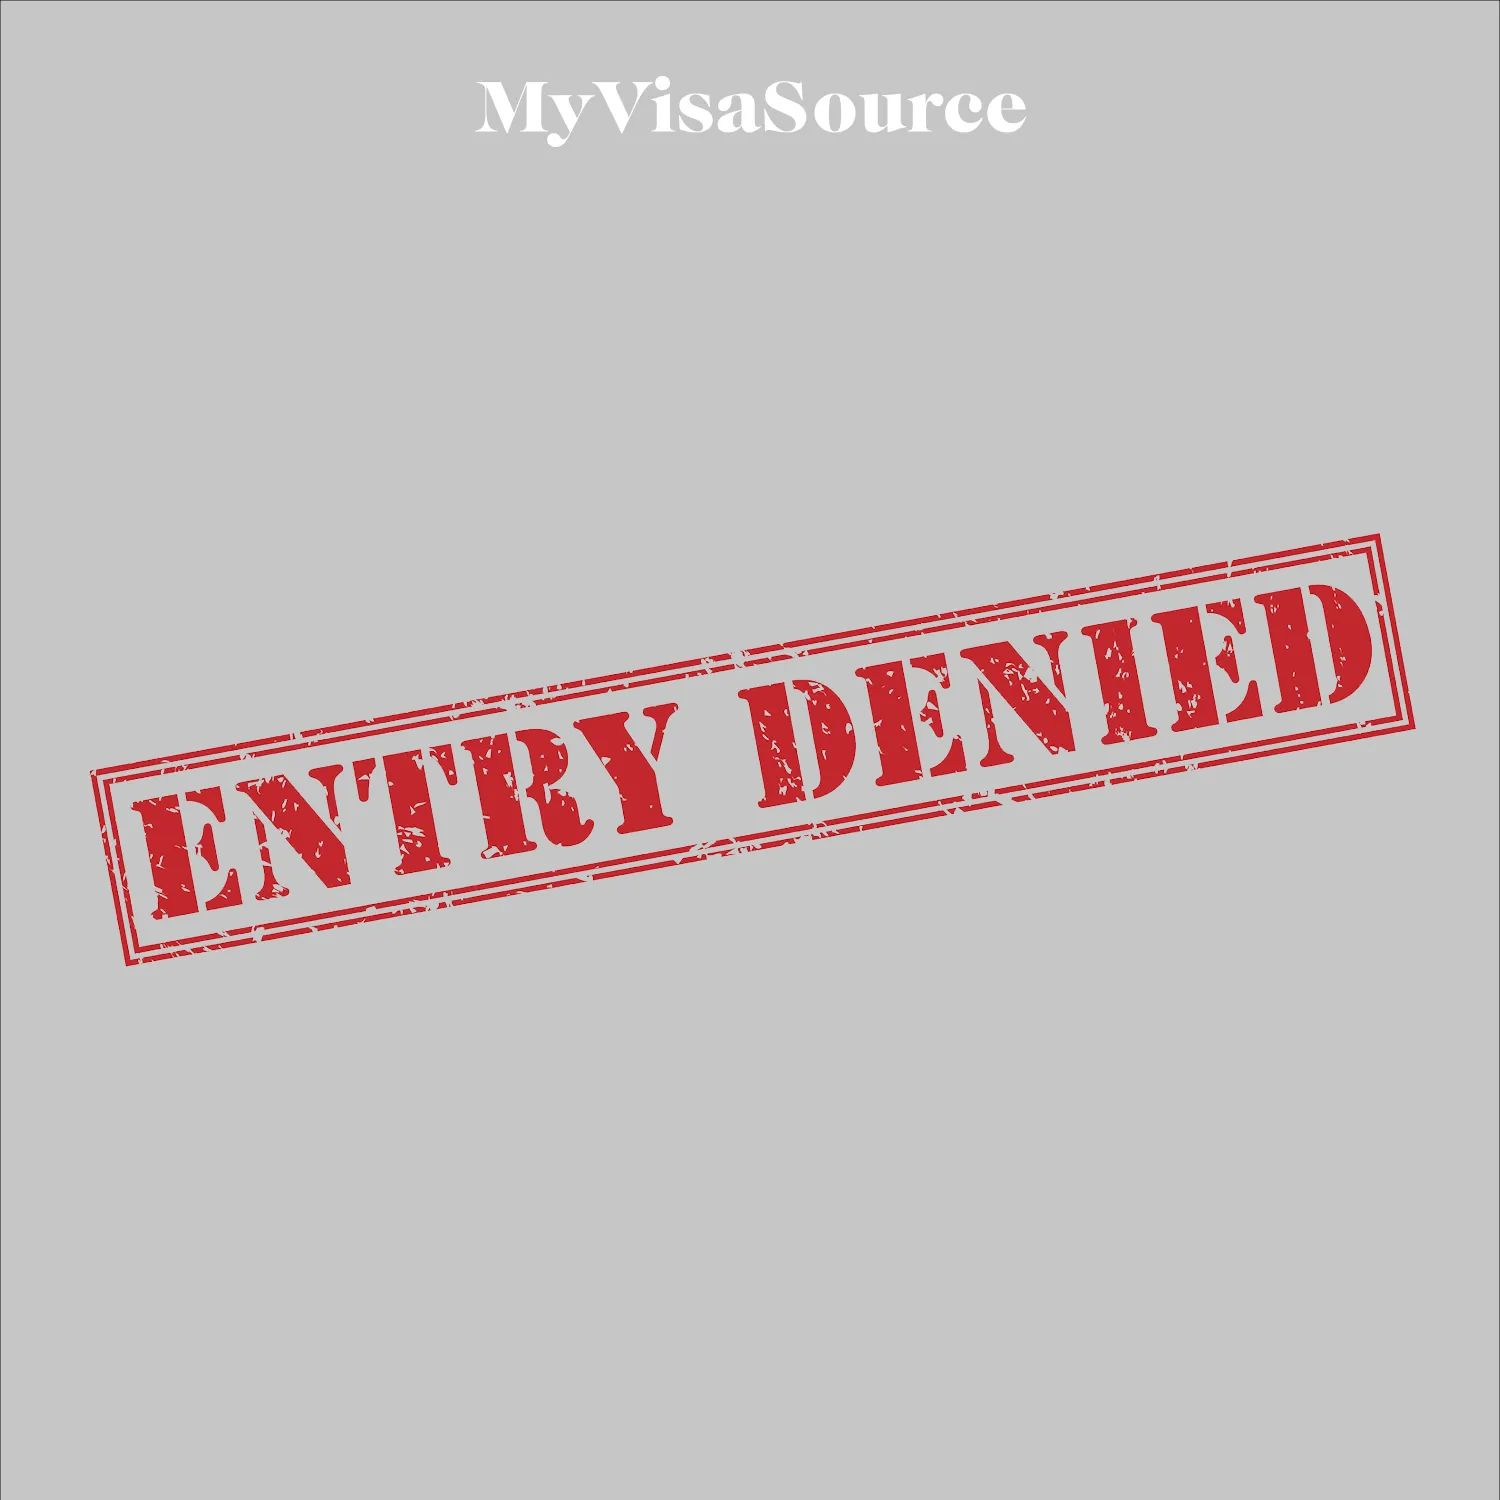 denied-entry-red-stamp-on-grey-background-by-my-visa-source